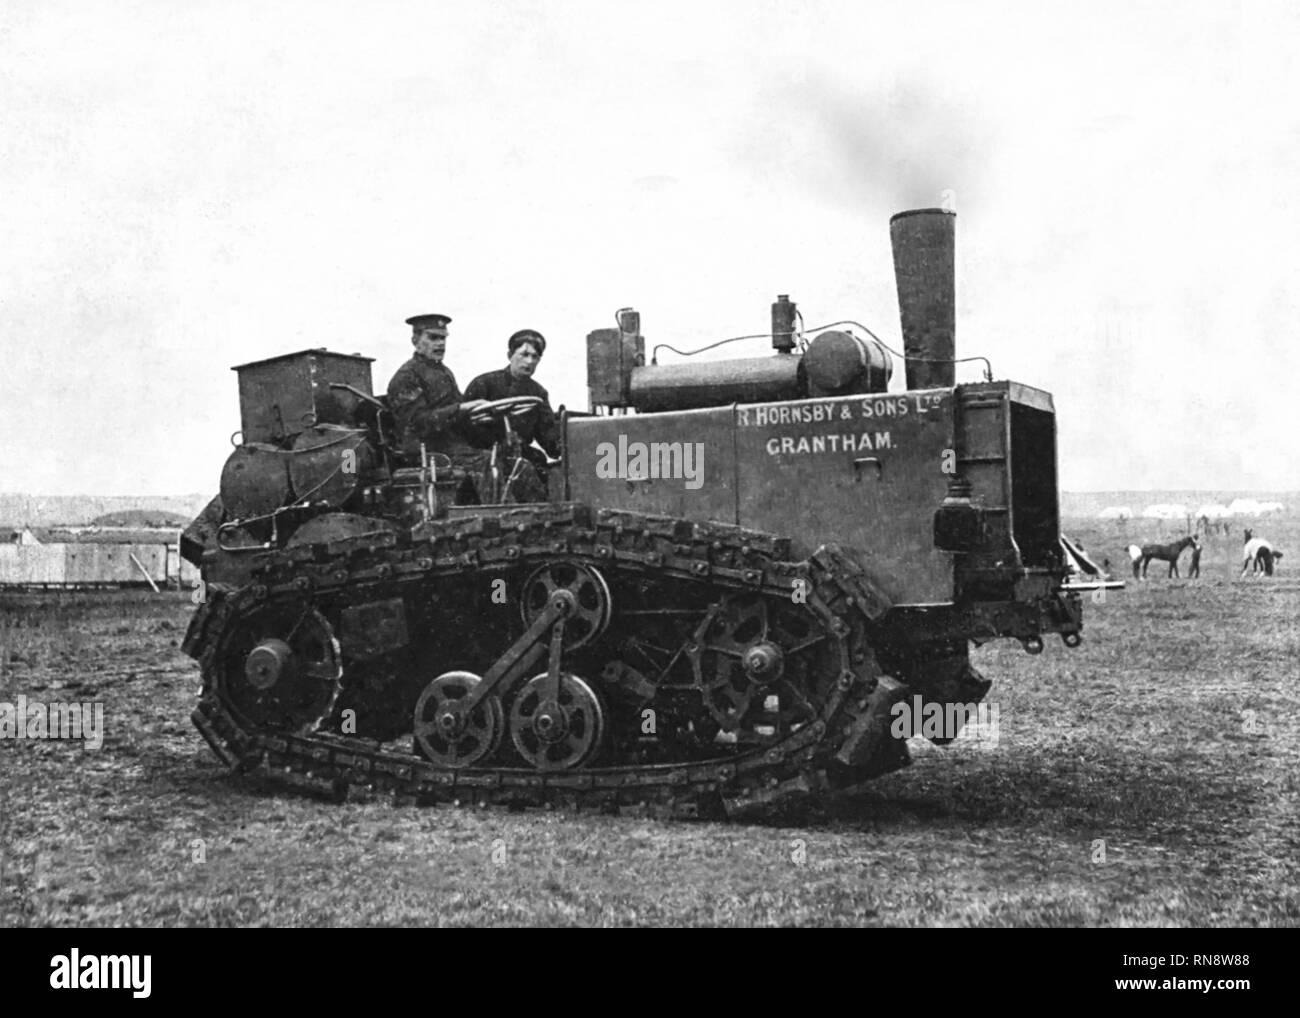 'The Caterpillar' or Walking Engine. Made by R.Hornsby & Sons Ltd. Grantham featuring the caterpillar track patented in 1904. - Stock Image